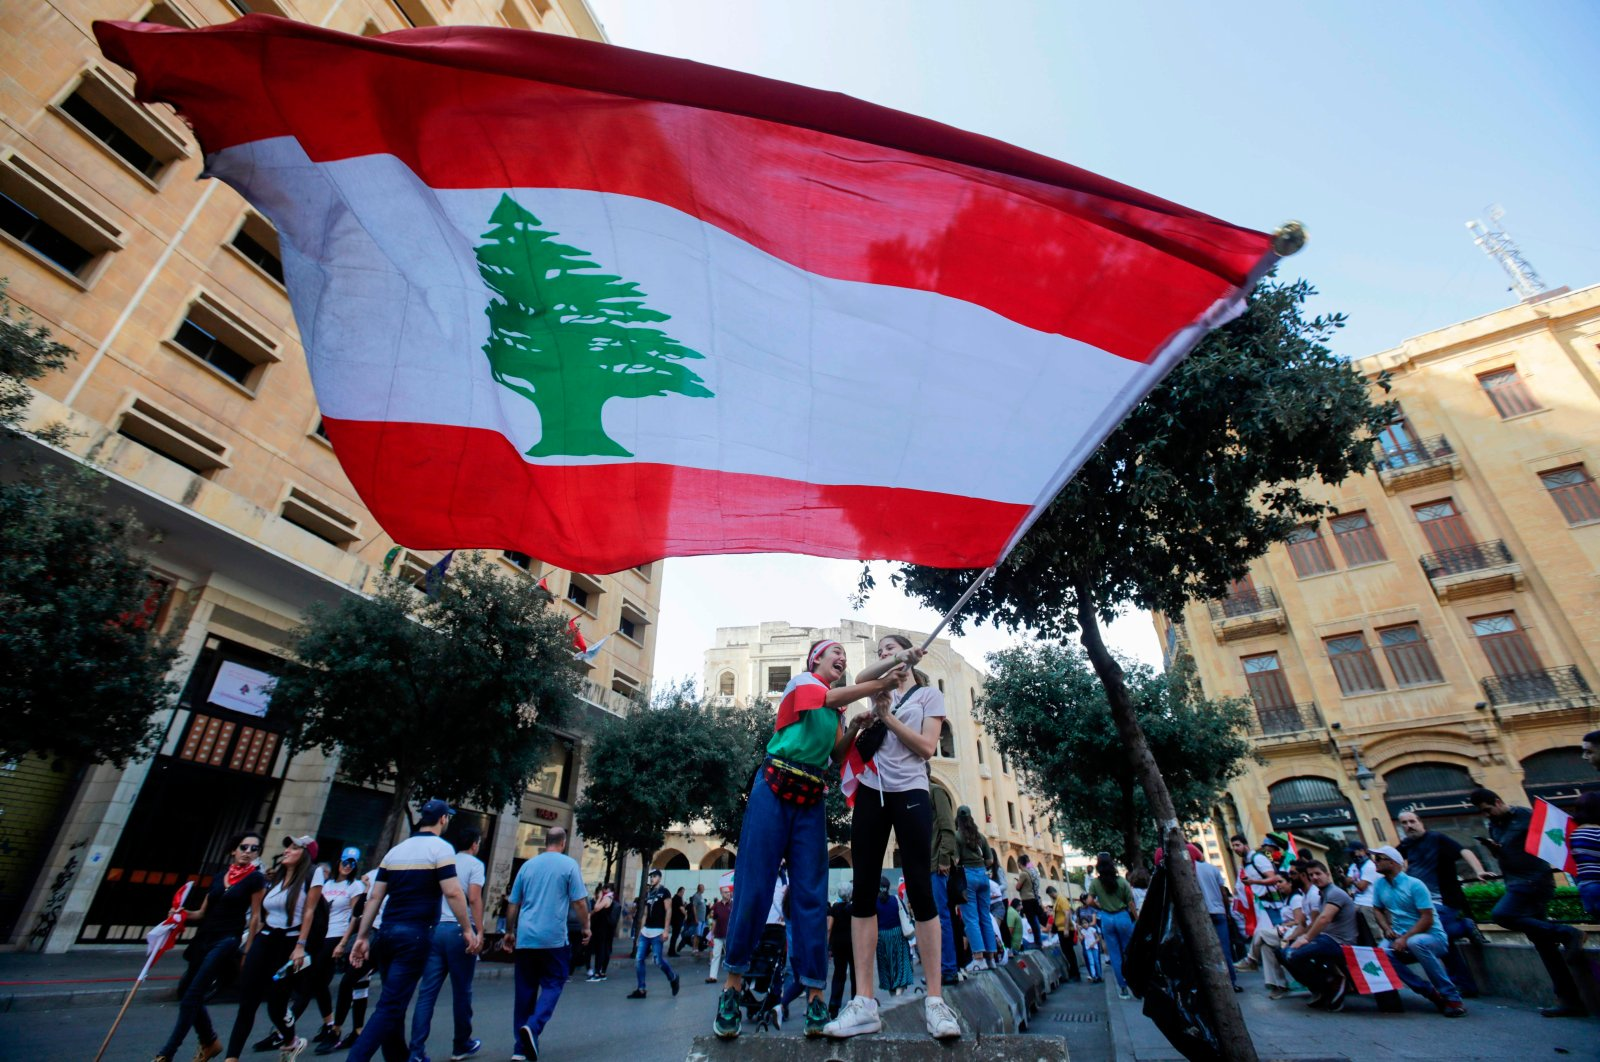 Lebanese protesters rally in downtown Beirut, Lebanon, Oct. 20, 2019. (AFP Photo)